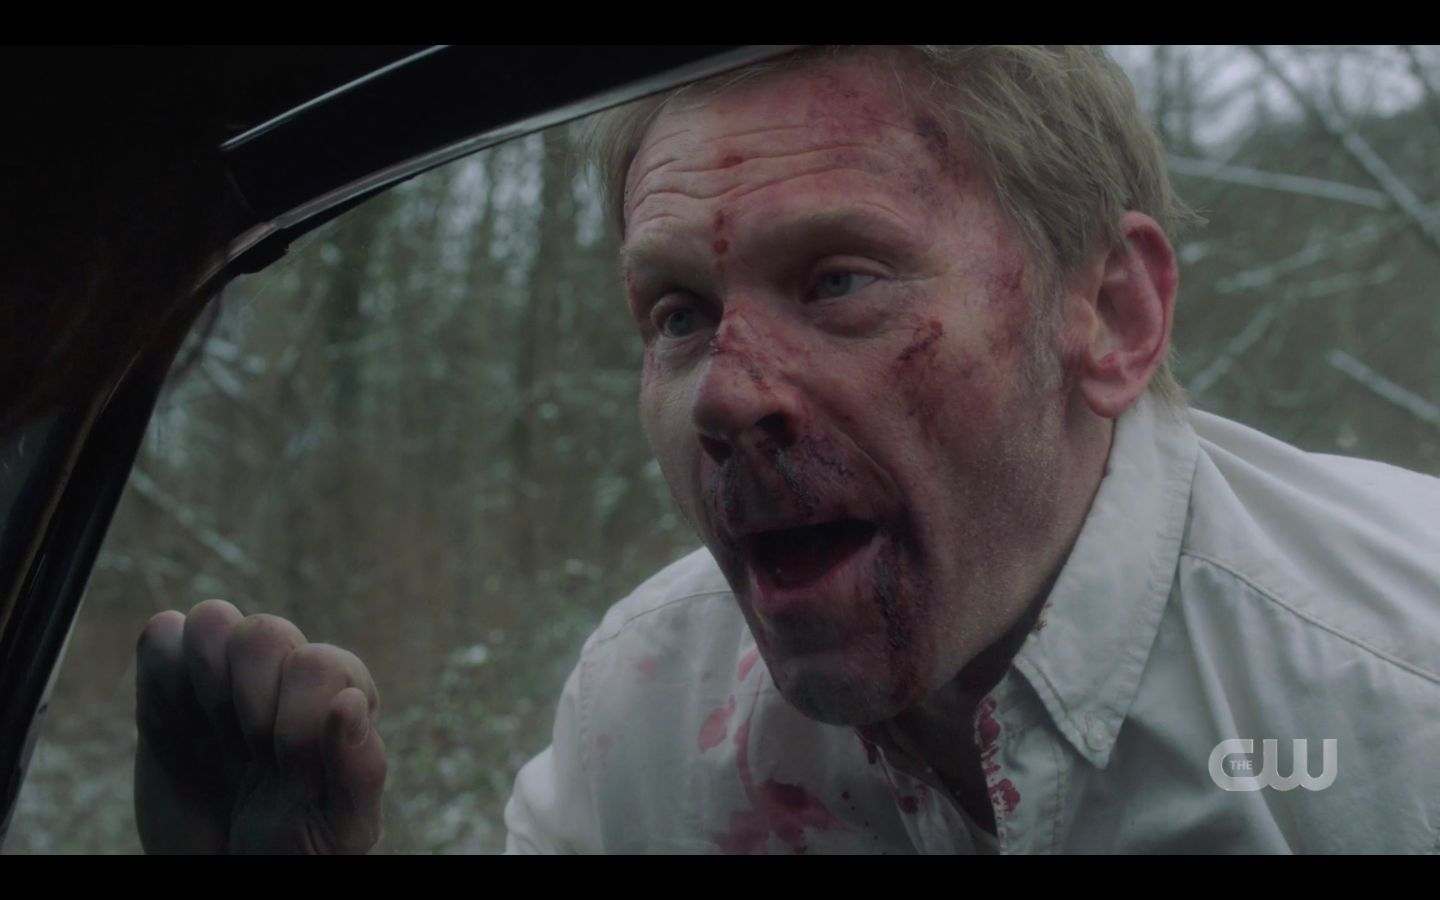 SPN 14.17 Mark Pellegrino Nick bloody face from choking out Sam